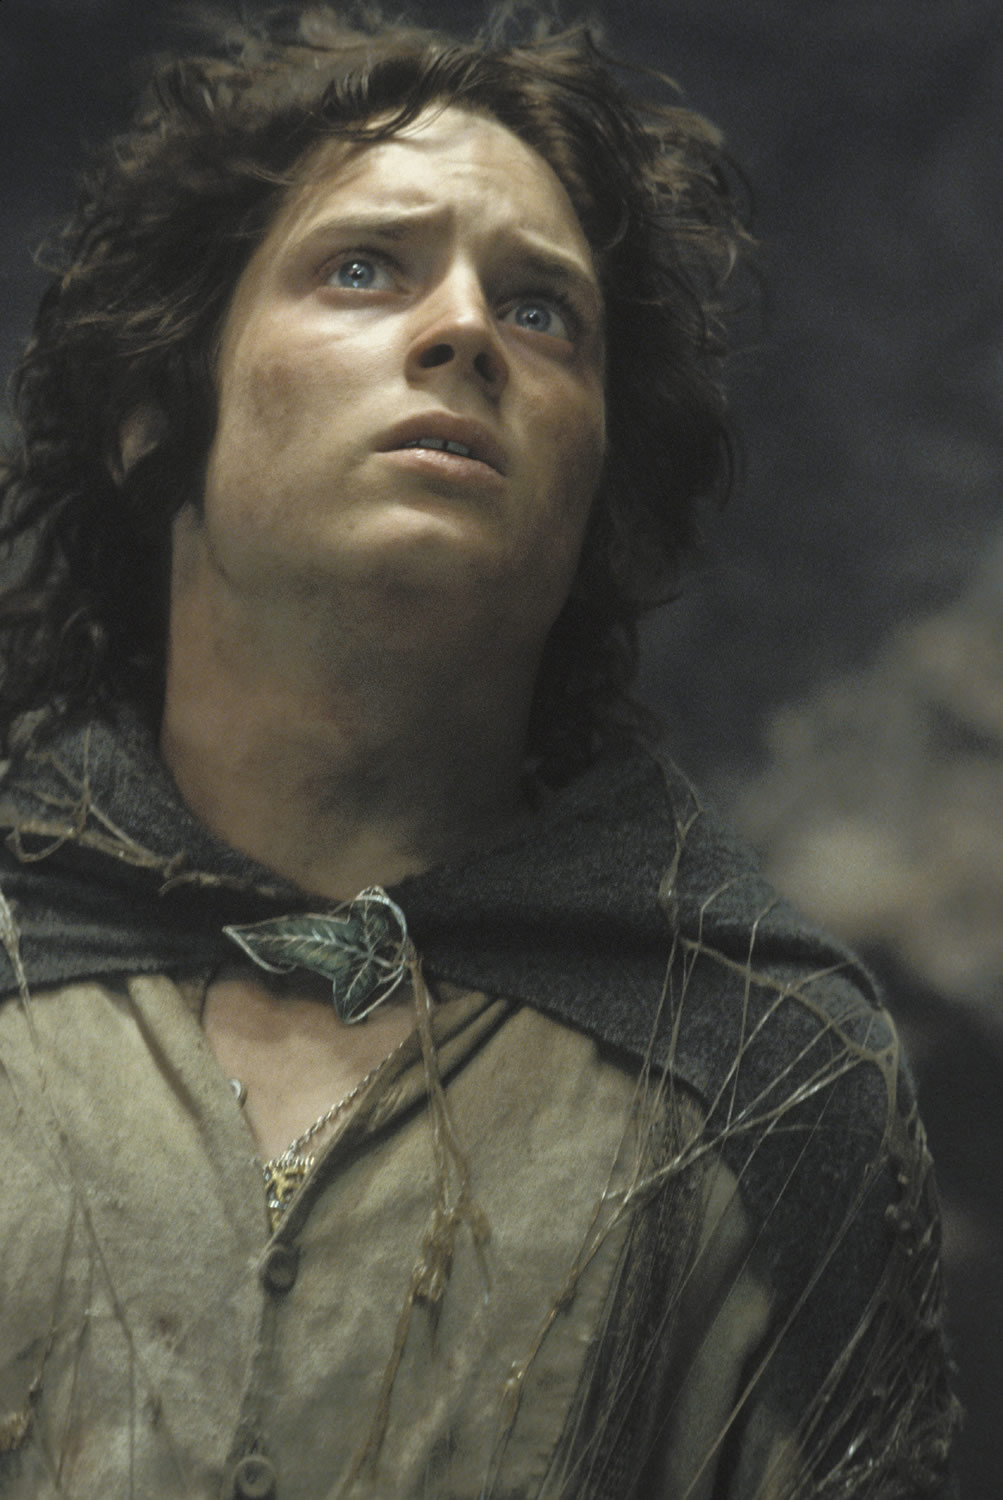 TV and movies: Elijah Wood as Frodo